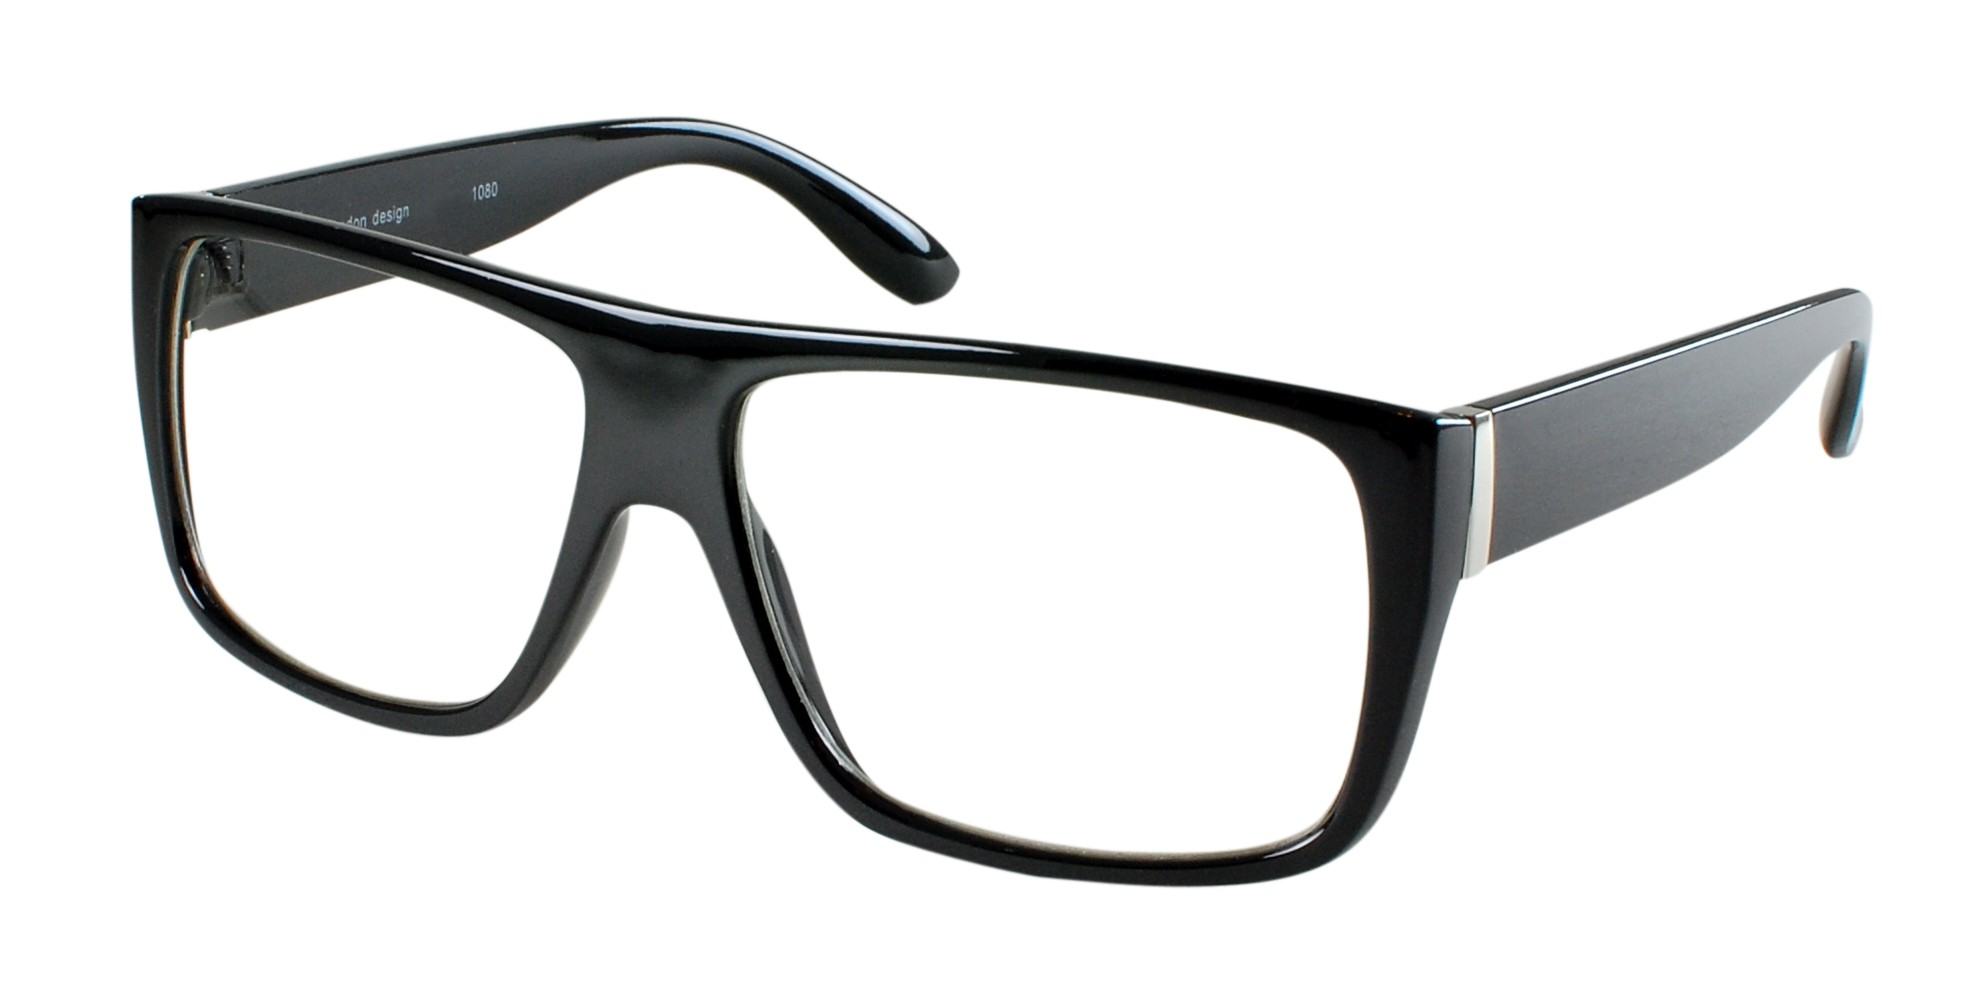 funny nerd geek glasses thick lenses costume joke toy auctions buy